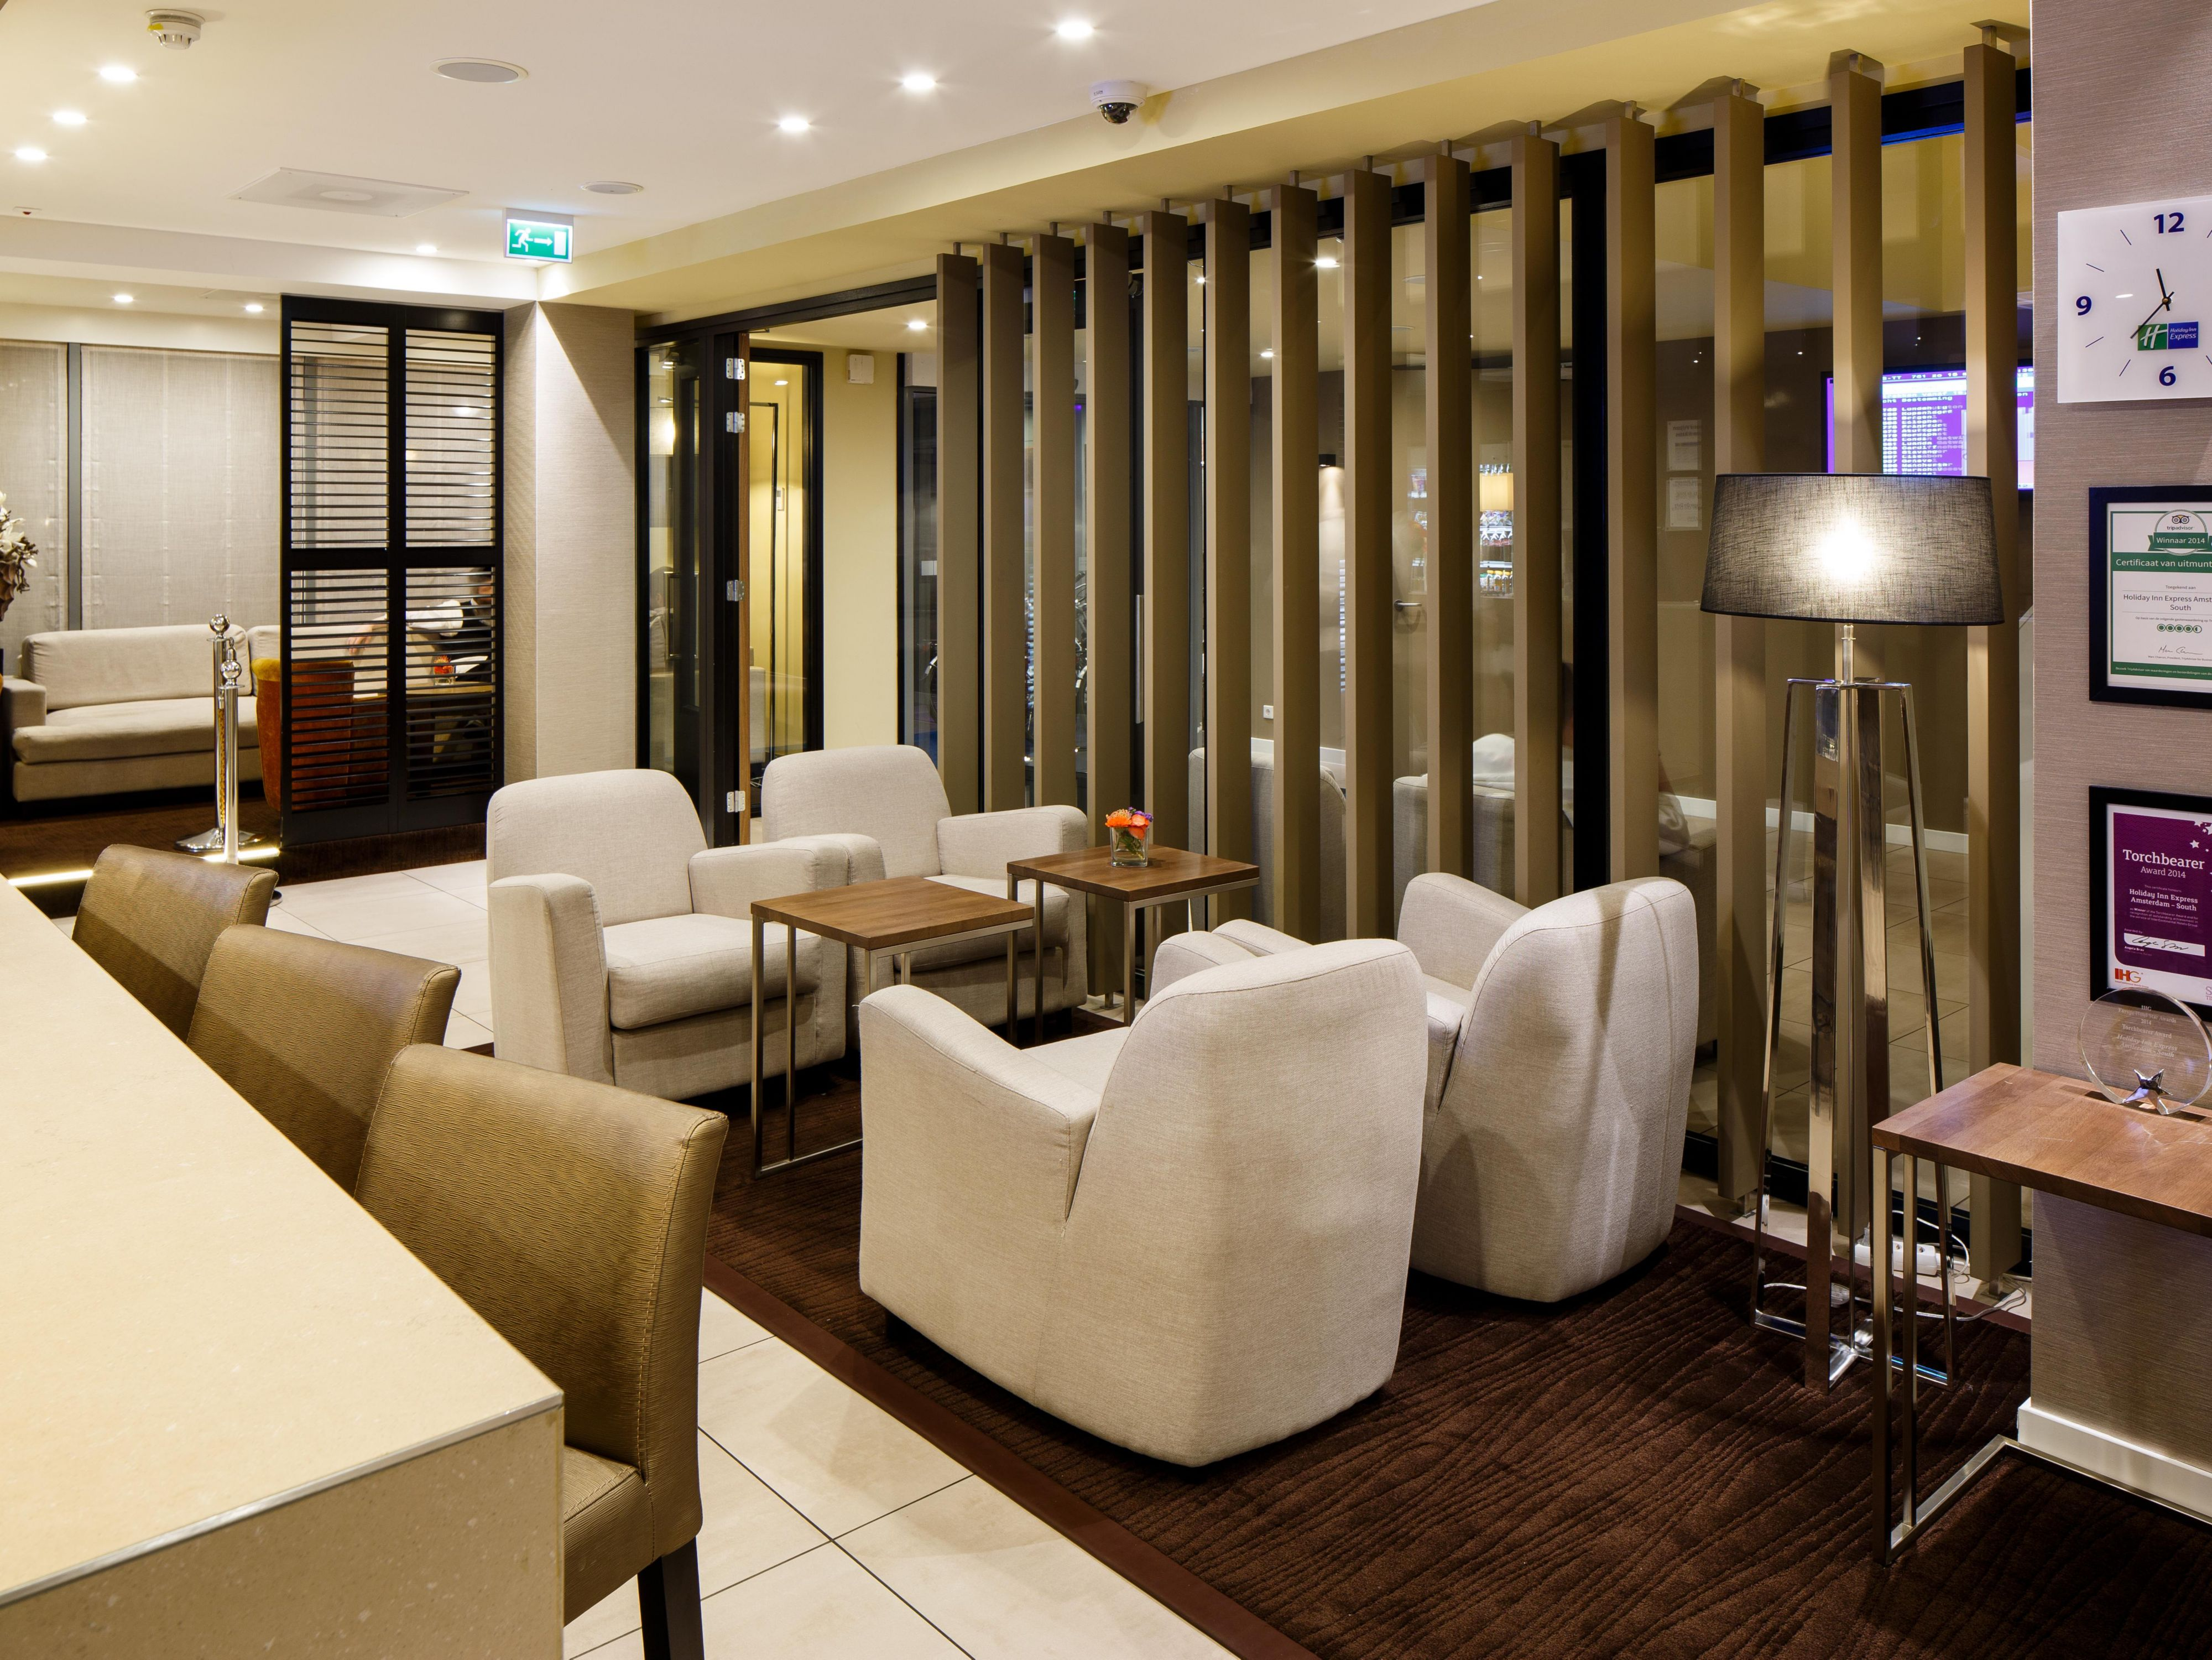 Sip a cold beer in our Lounge Bar